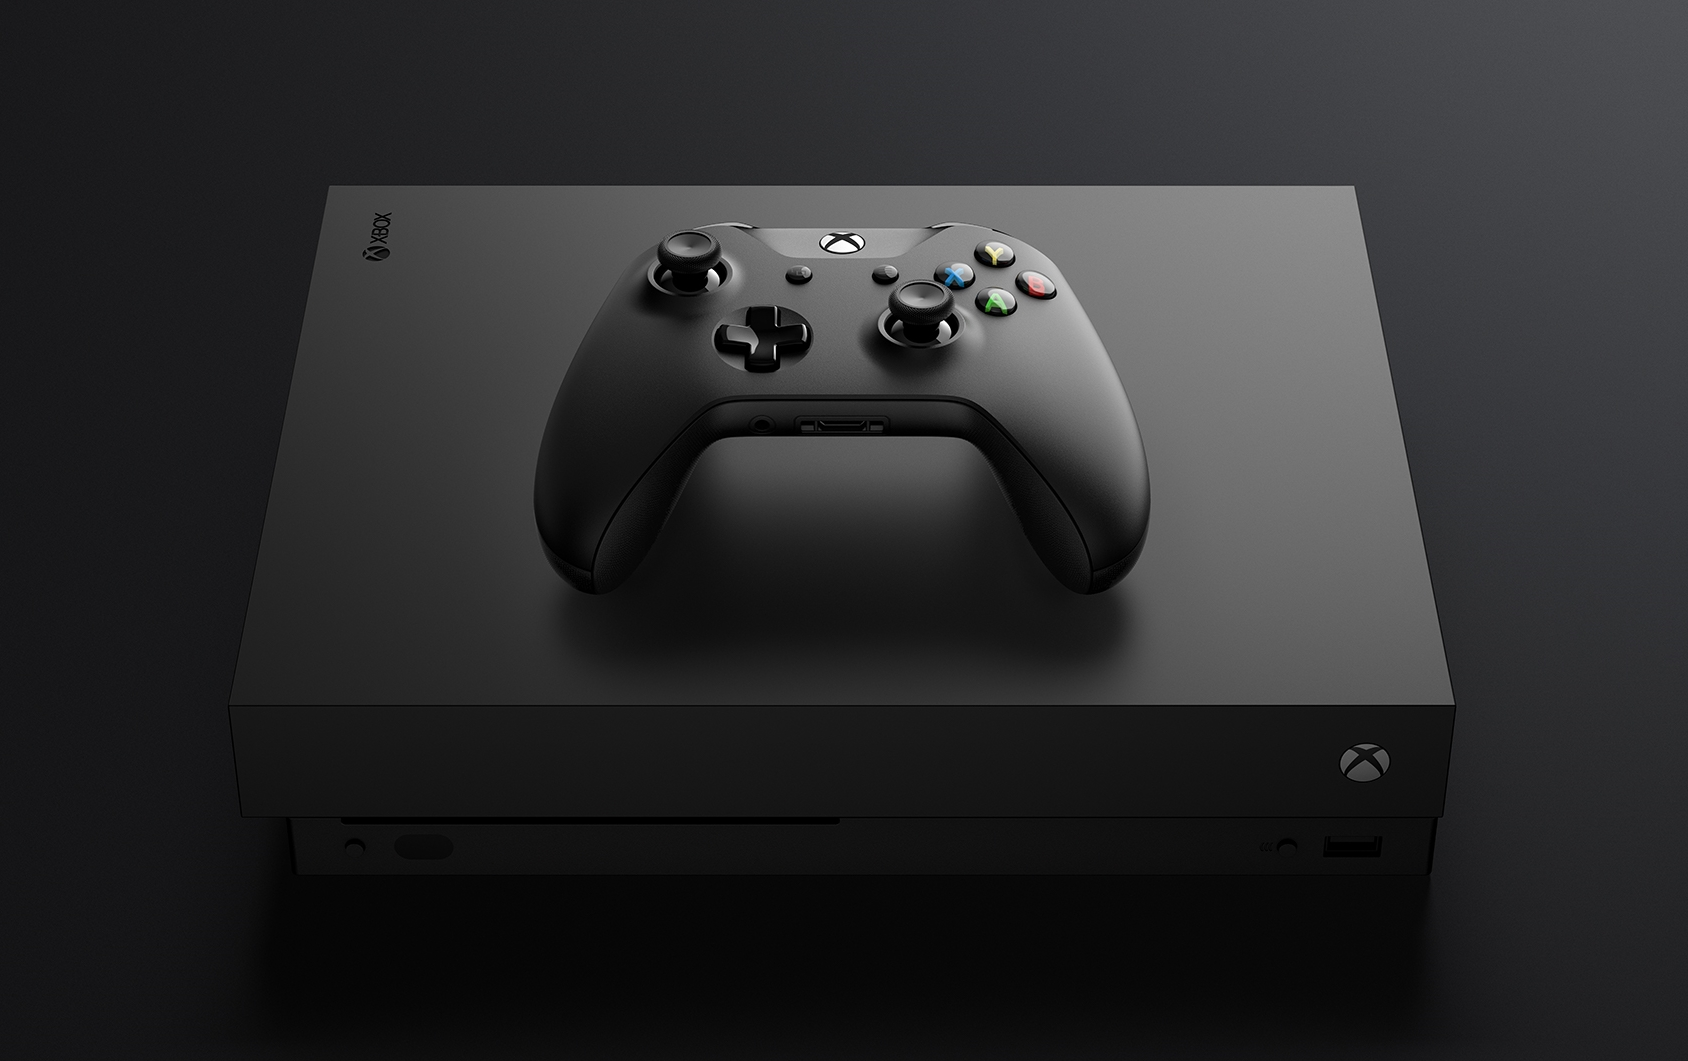 Xbox One keyboard/mouse support 'definitely' on the way